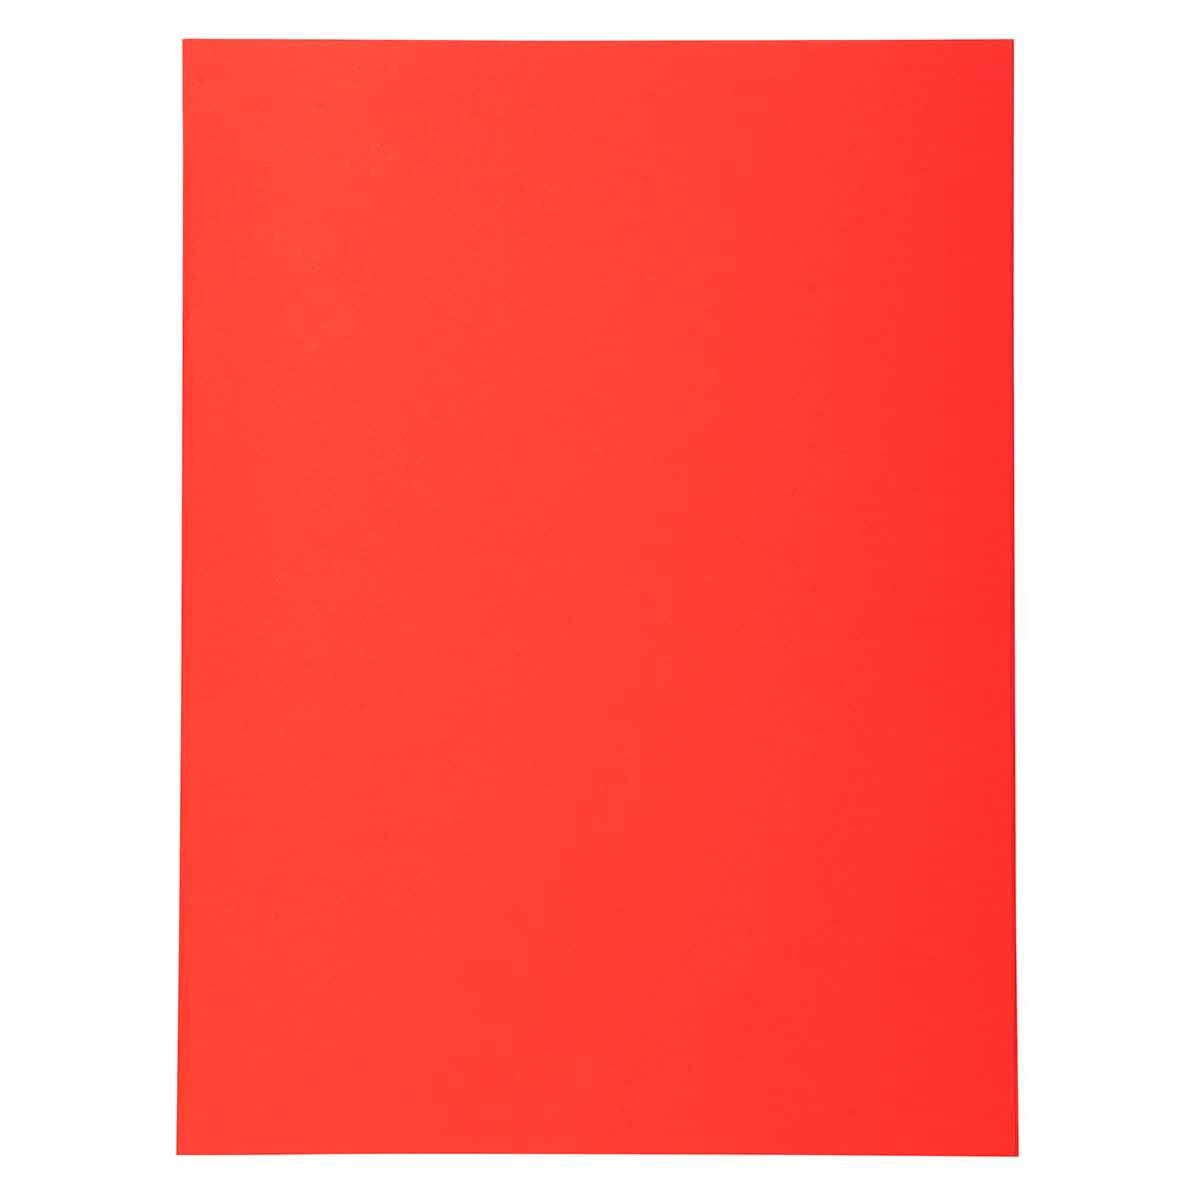 Exacompta Forever Square Cut Folders A4 170gsm 5 Packs of 100 Red